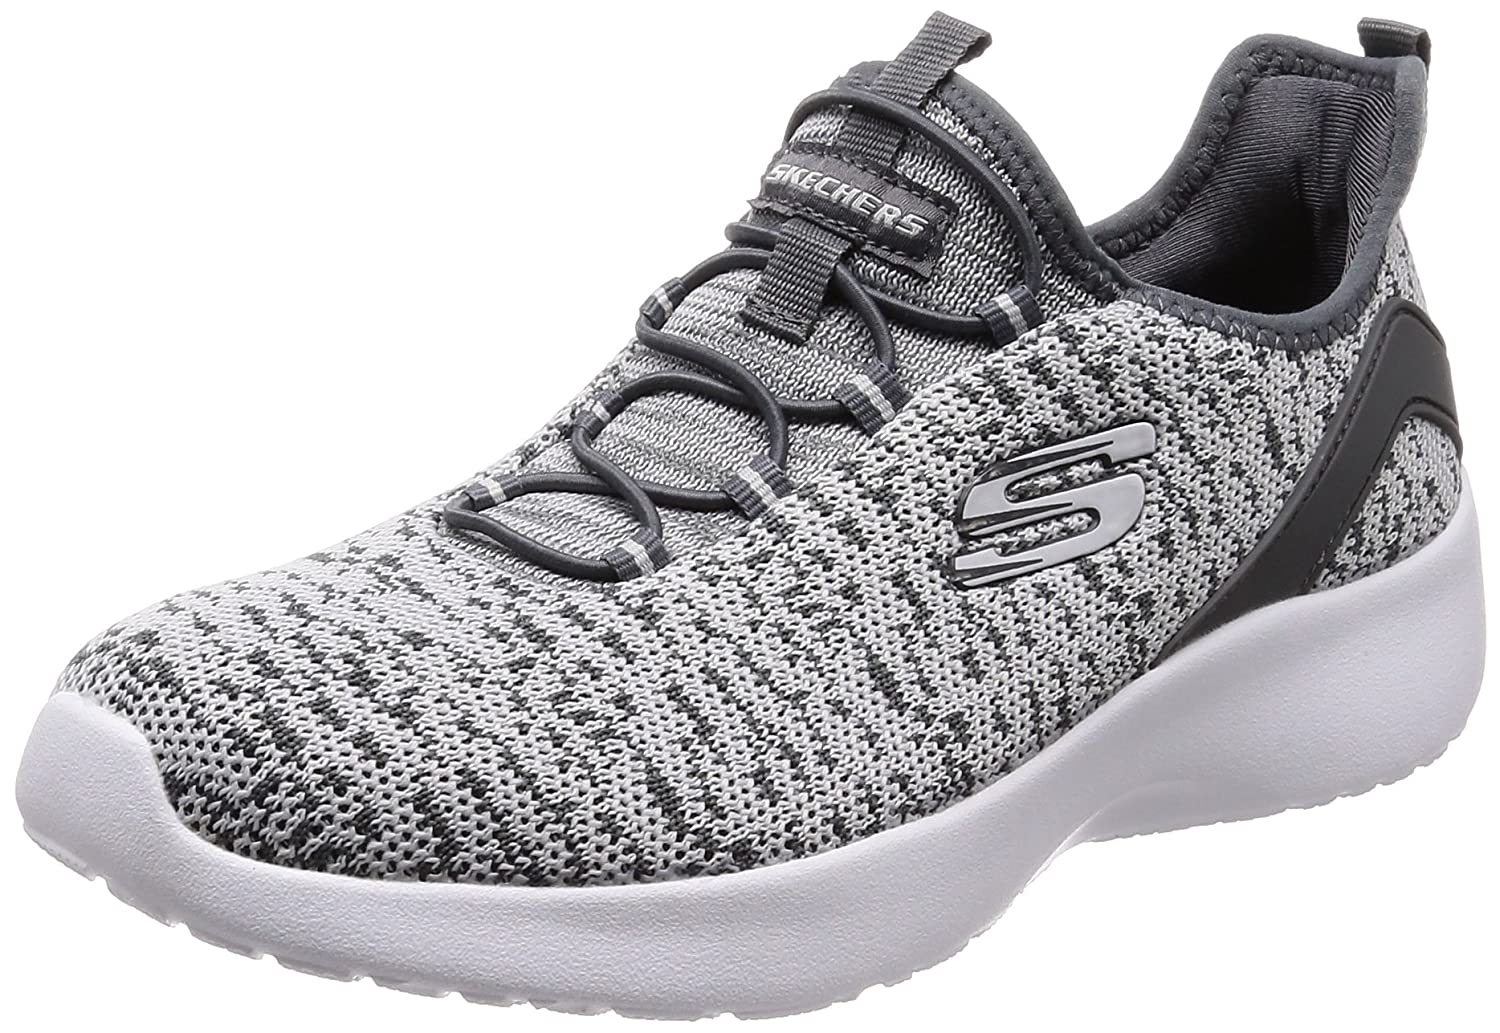 Skechers Damen Sneaker Dynamight-Fleetly Grau  39.5 EU|Grau